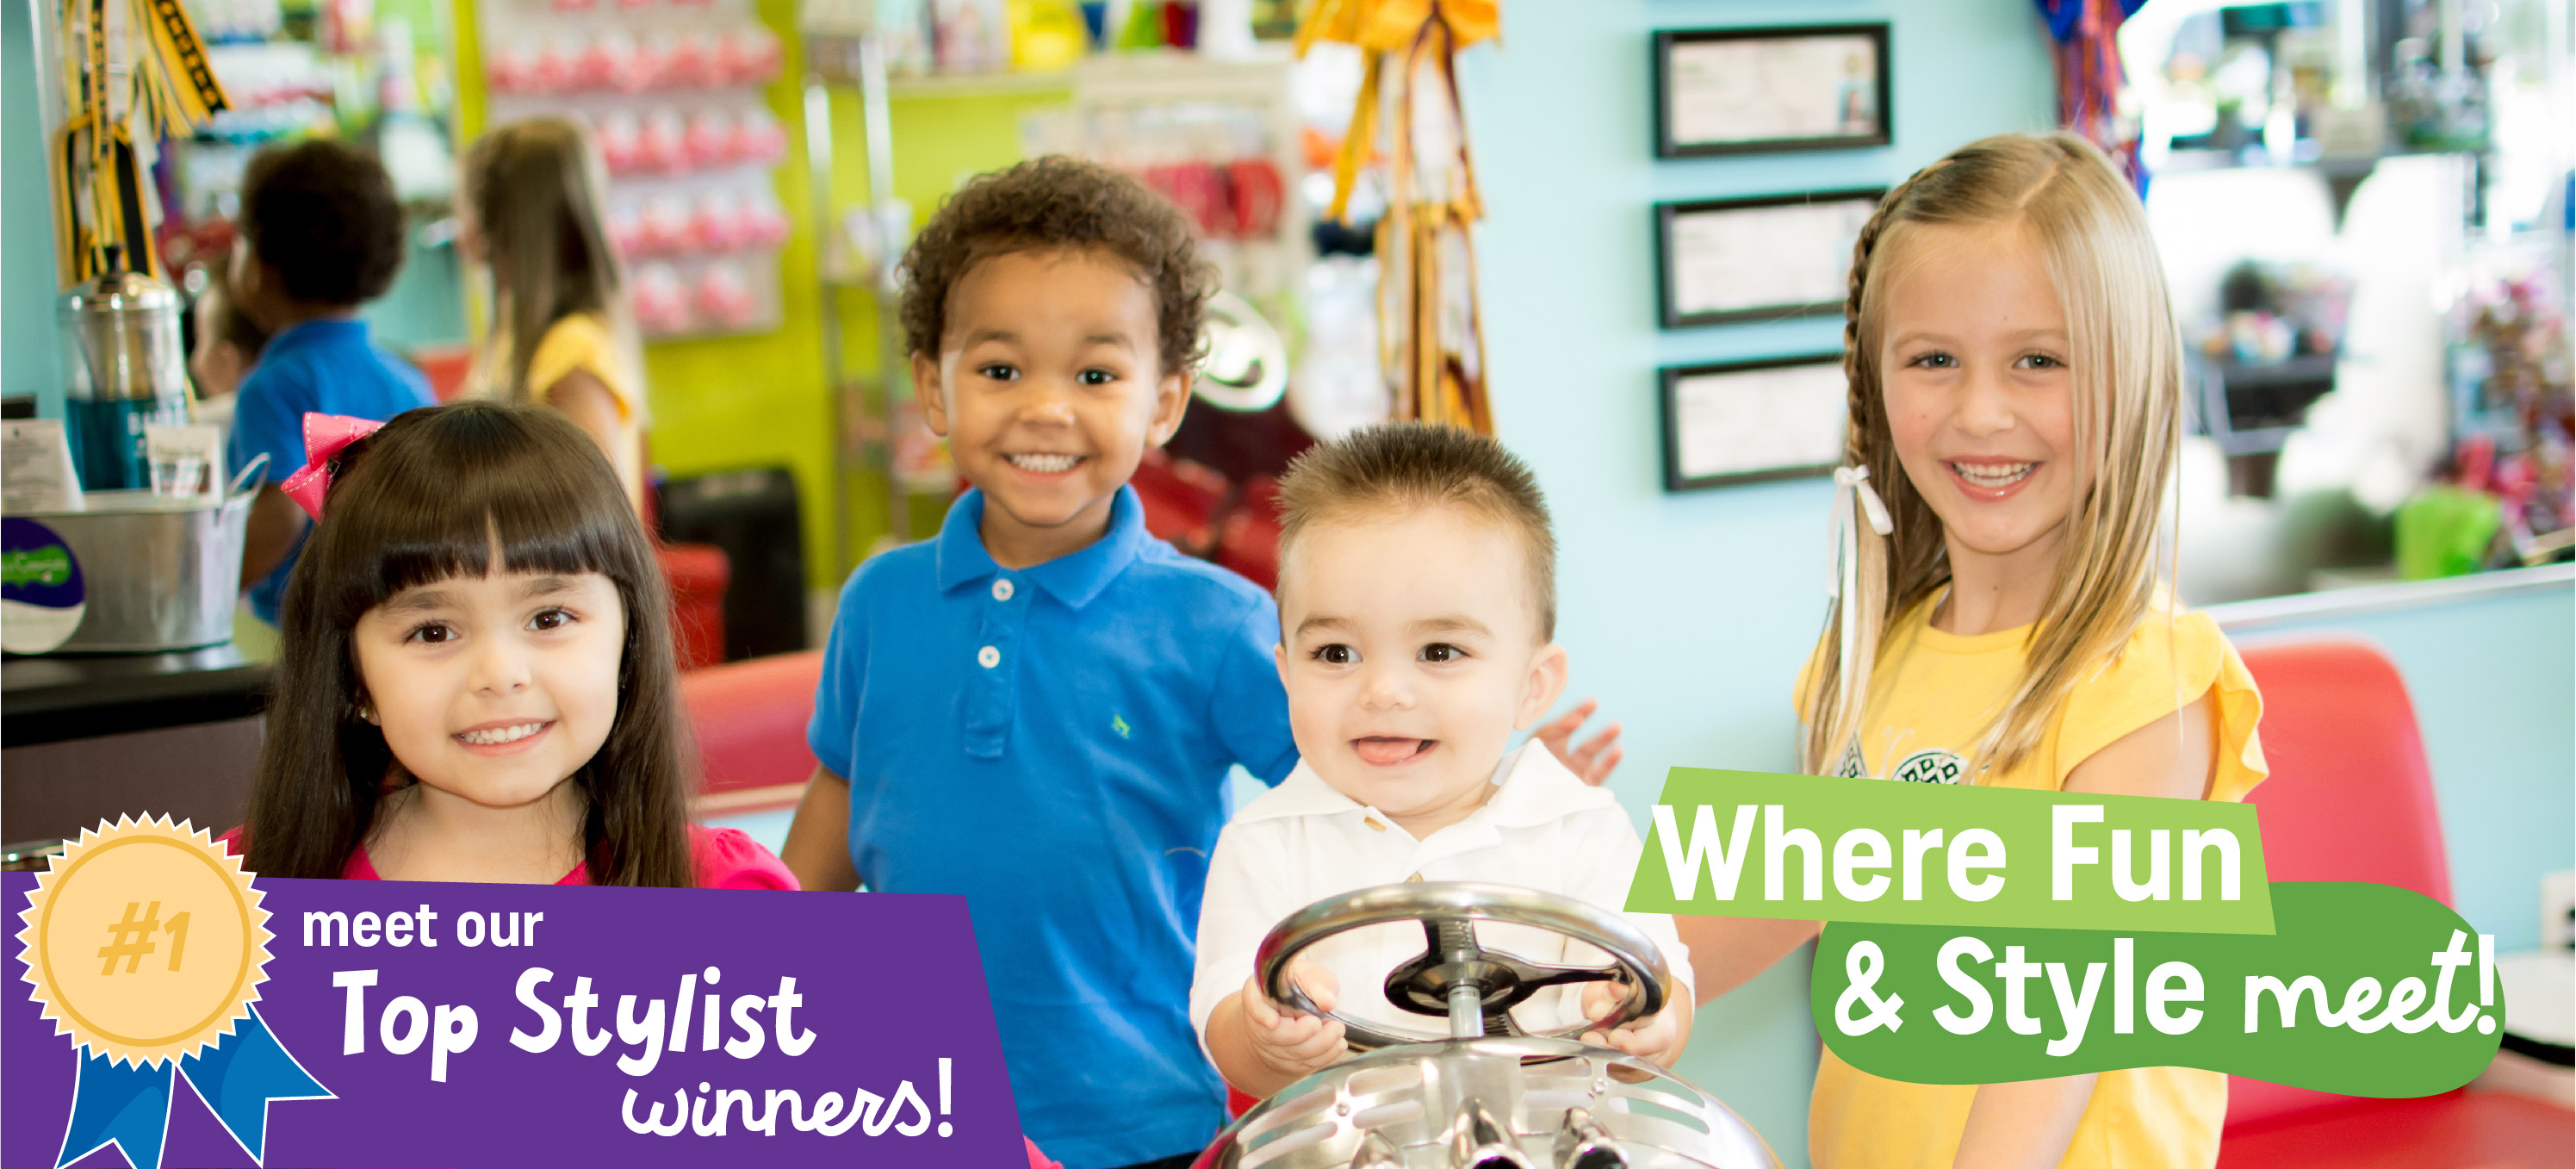 Pigtails & Crewcuts Haircuts for Kids